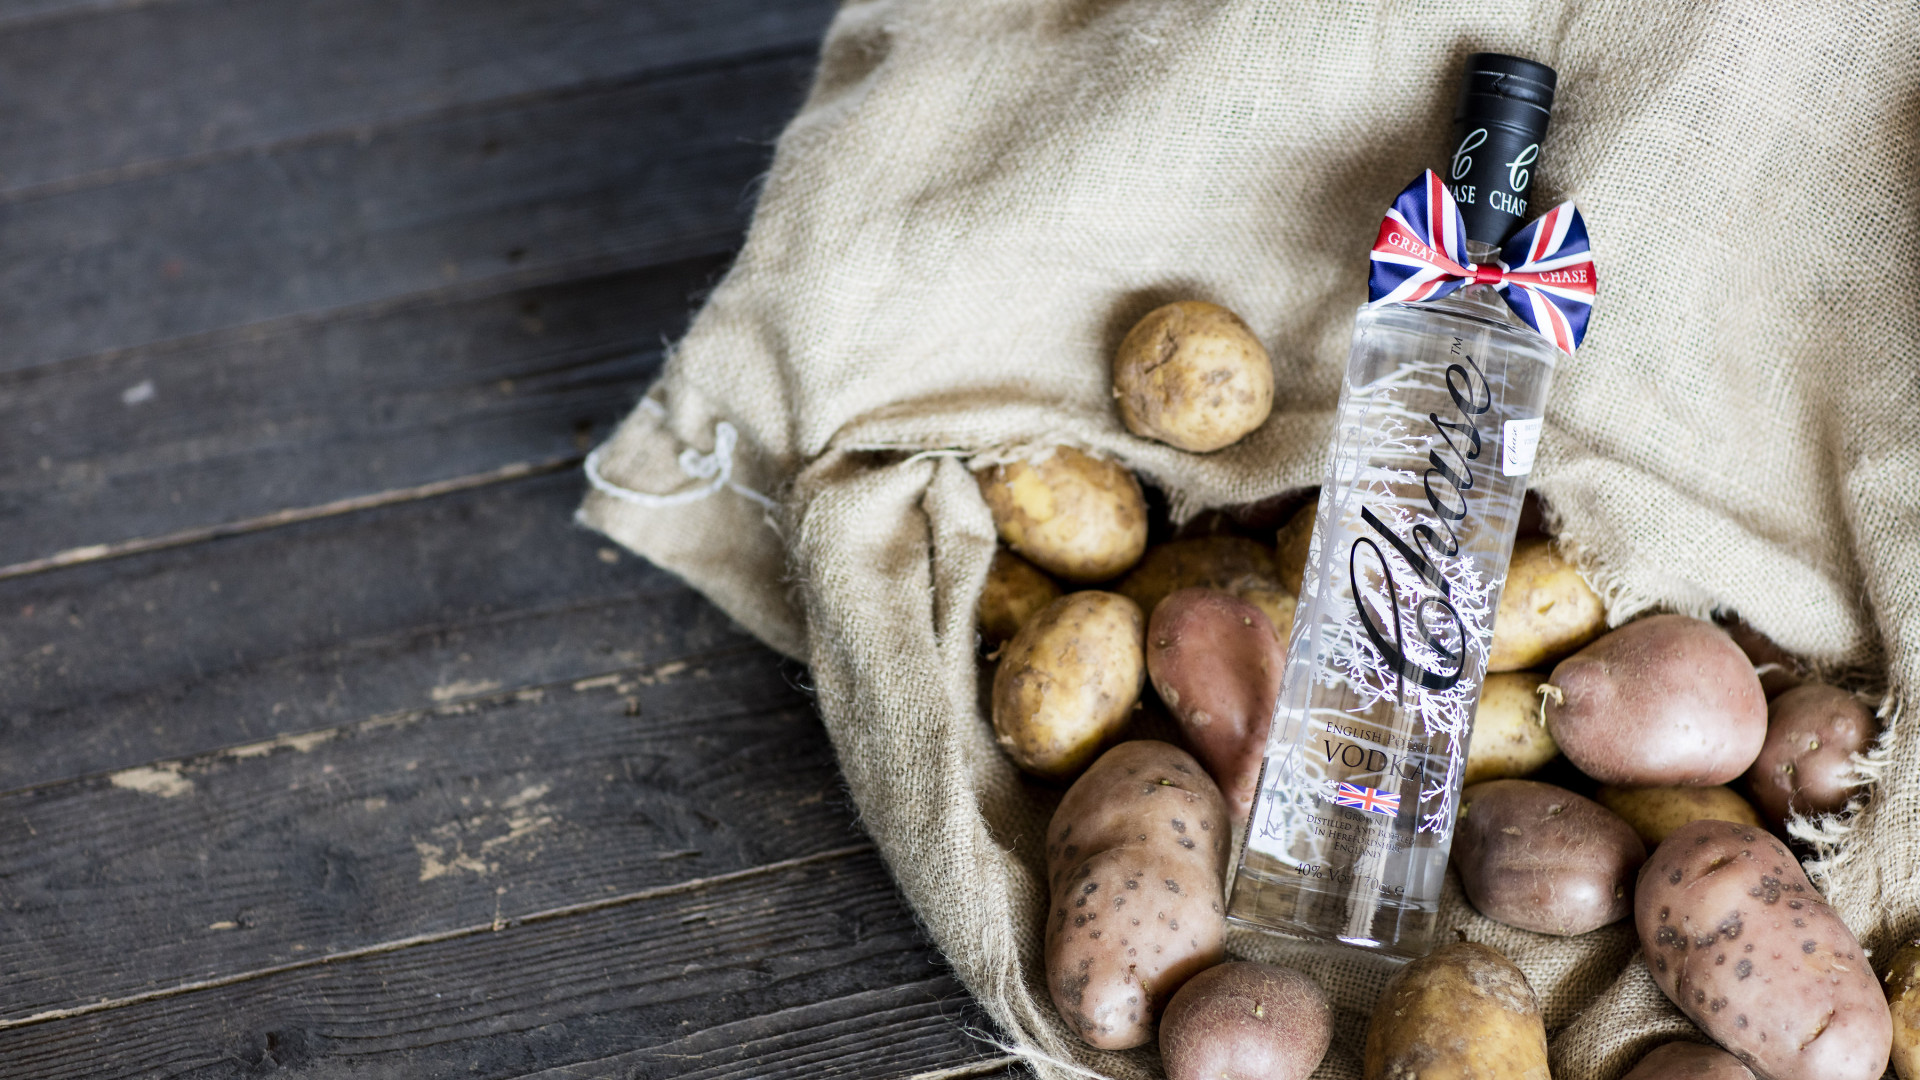 Bottled Chase potato Vodka at their distillery in Hereford